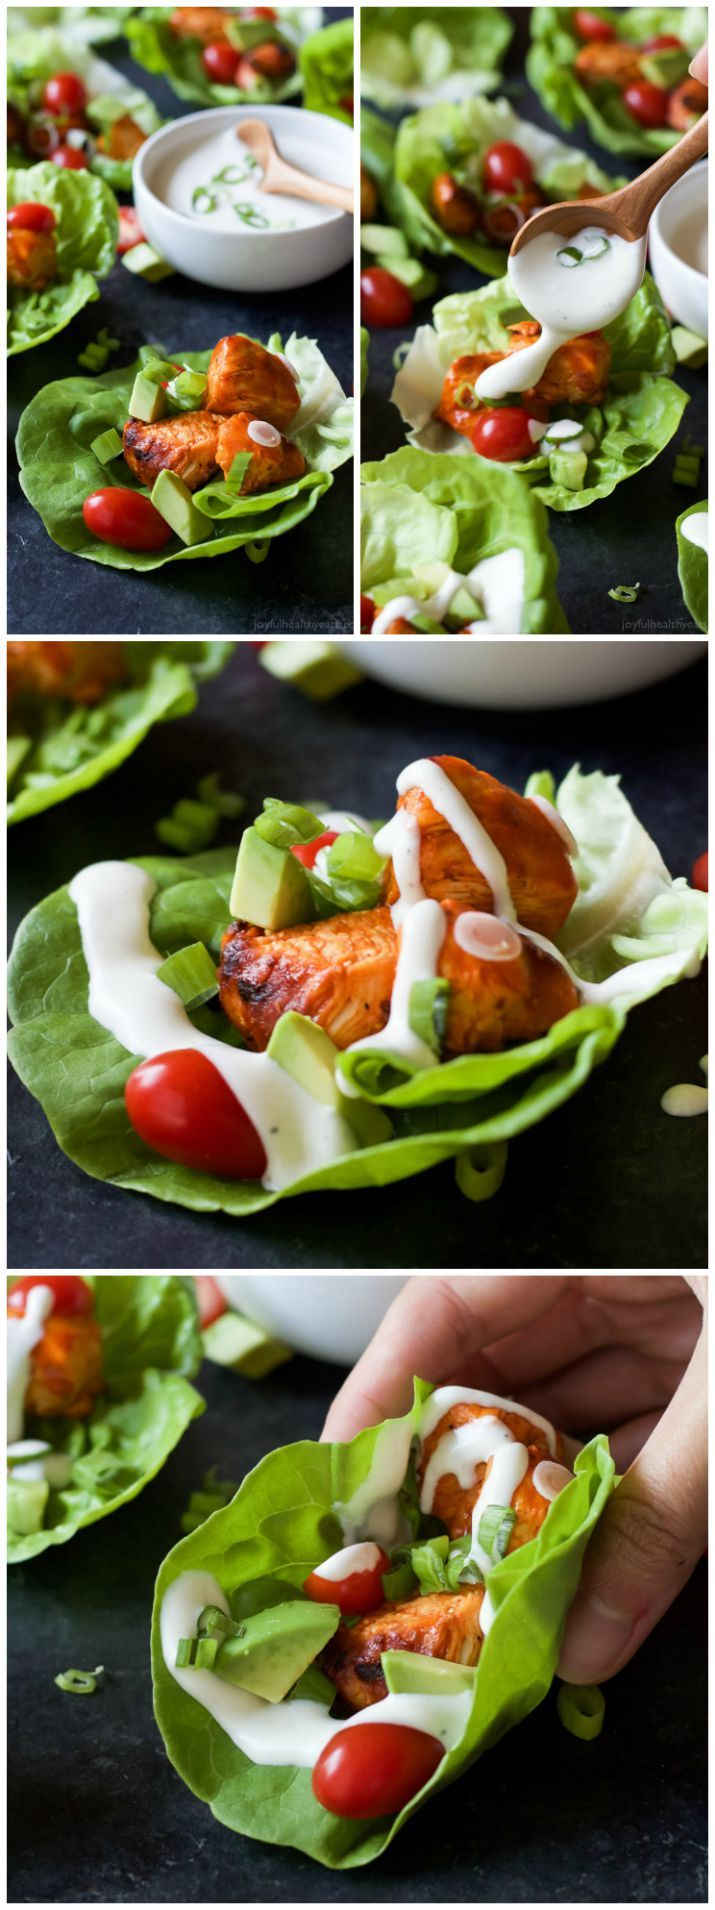 Get game day ready with these healthier low calorie Grilled Buffalo Chicken Lettuce Wraps! All the same great flavor with half the calories! These are delicious!| joyfulhealthyeats.com #recipes